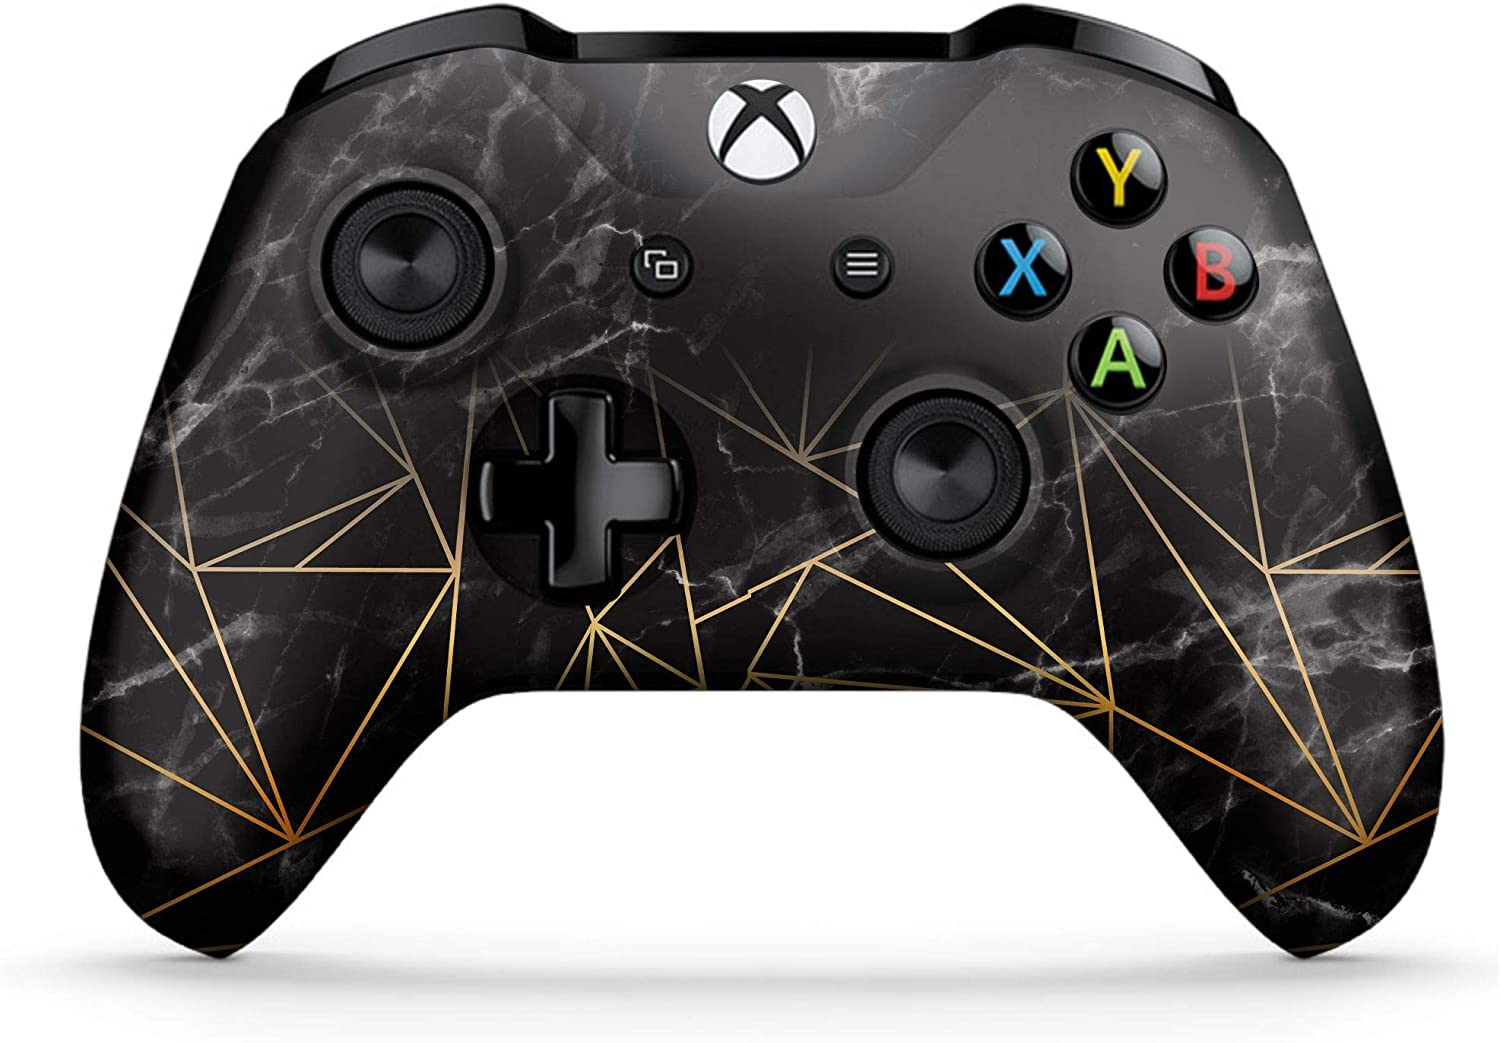 DreamController Modded Xbox One Controller Wireless - Control Xbox One Aim Assist Controller - Xbox Controller for PC